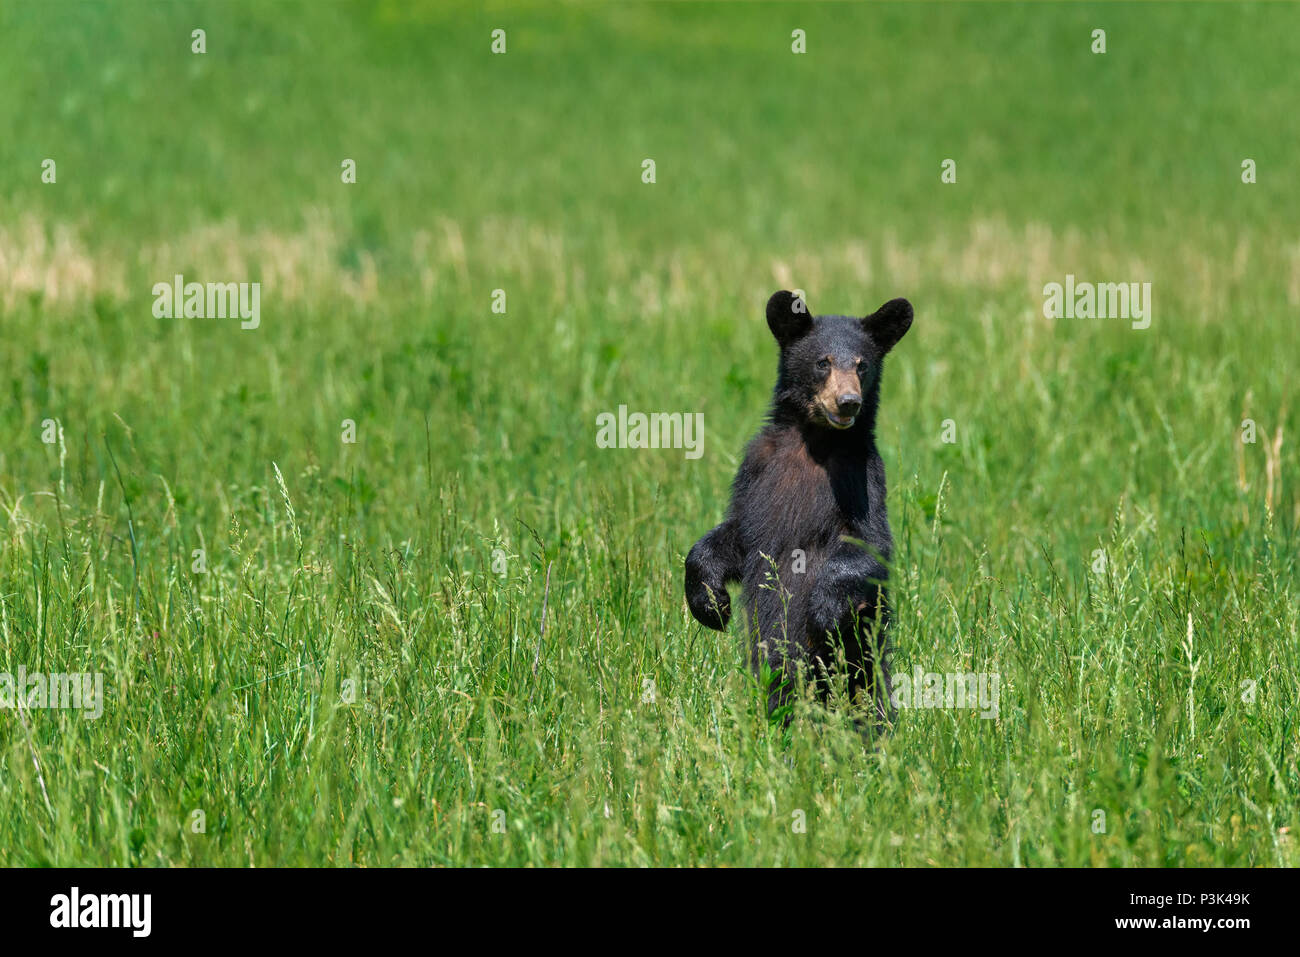 A north american black bear standing in a green field with copy space. - Stock Image